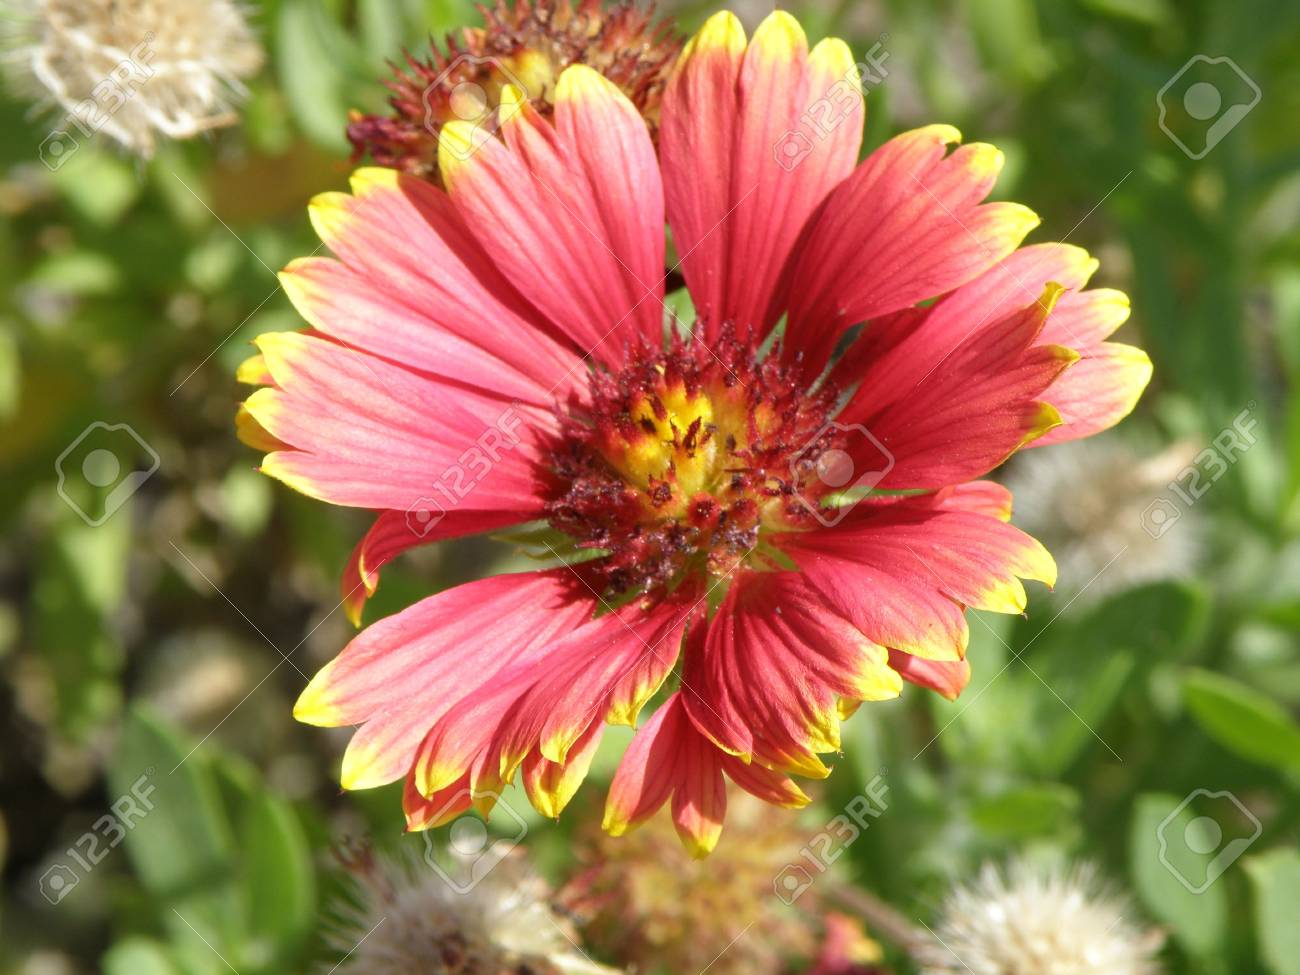 A beautiful red and yellow flower in the morning sun. Stock Photo - 4829370